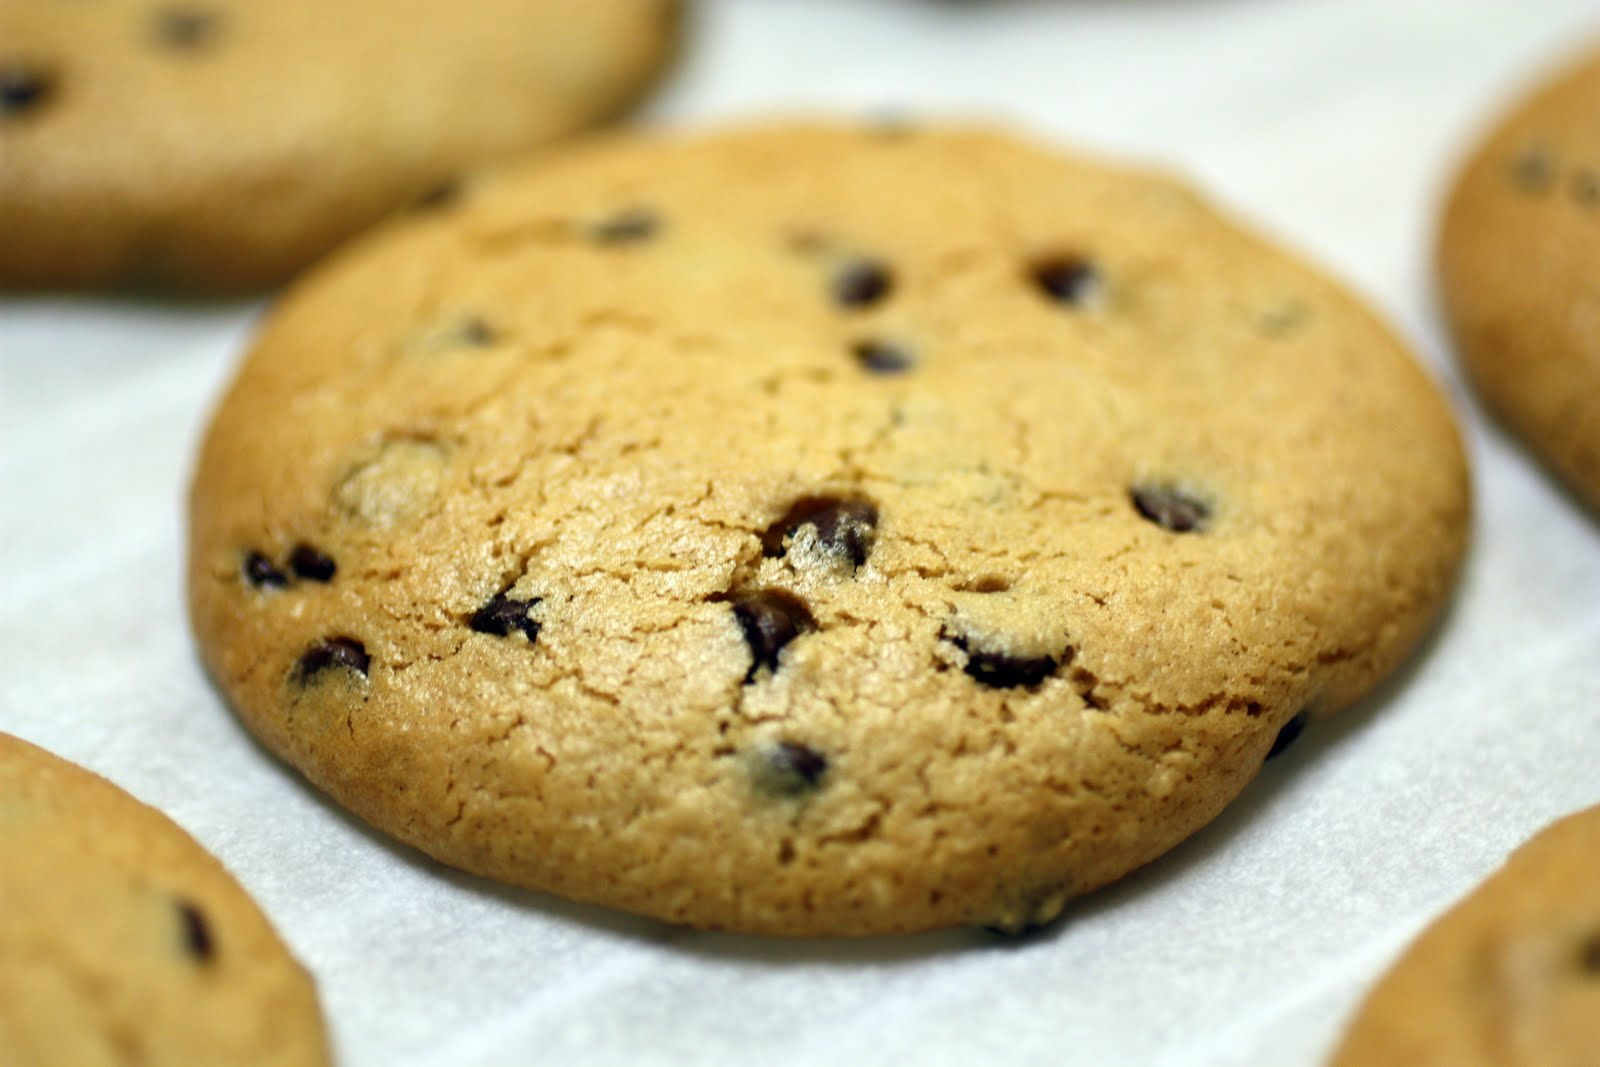 Paleo Chocolate Cookies We recently had the honor of